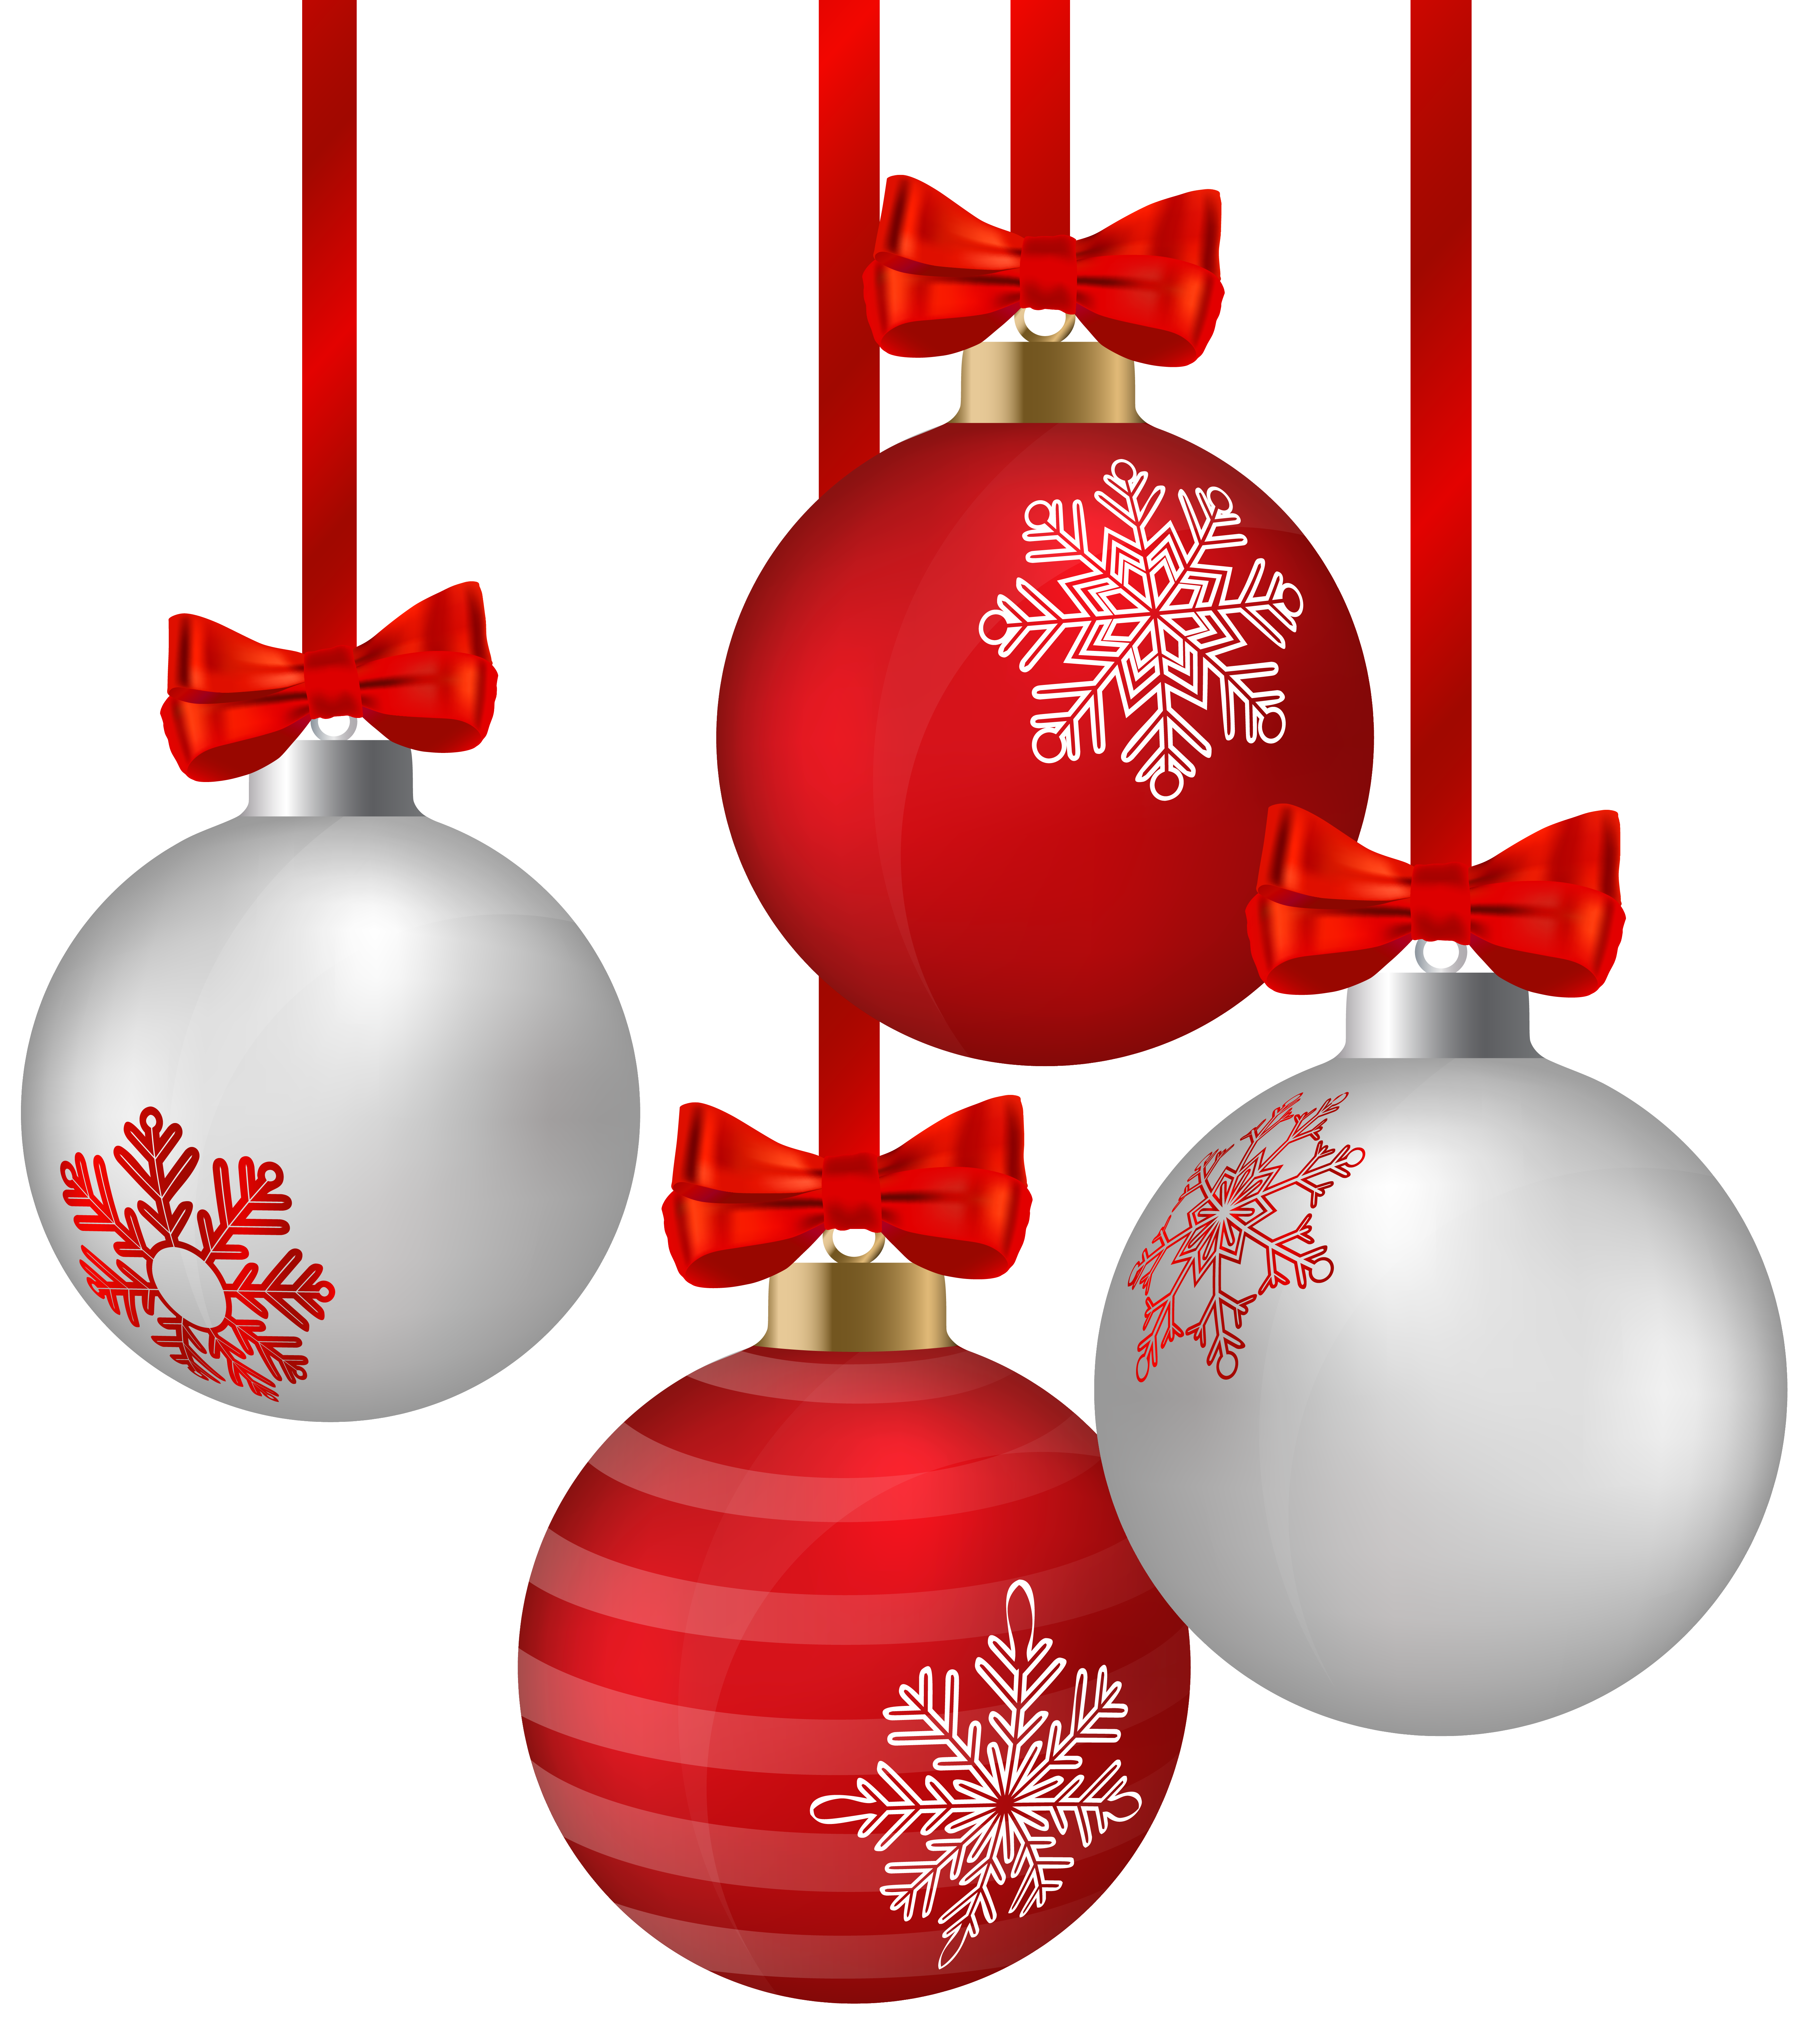 Christmas decorations background clipart free download Christmas ornament background clipart images gallery for free ... free download